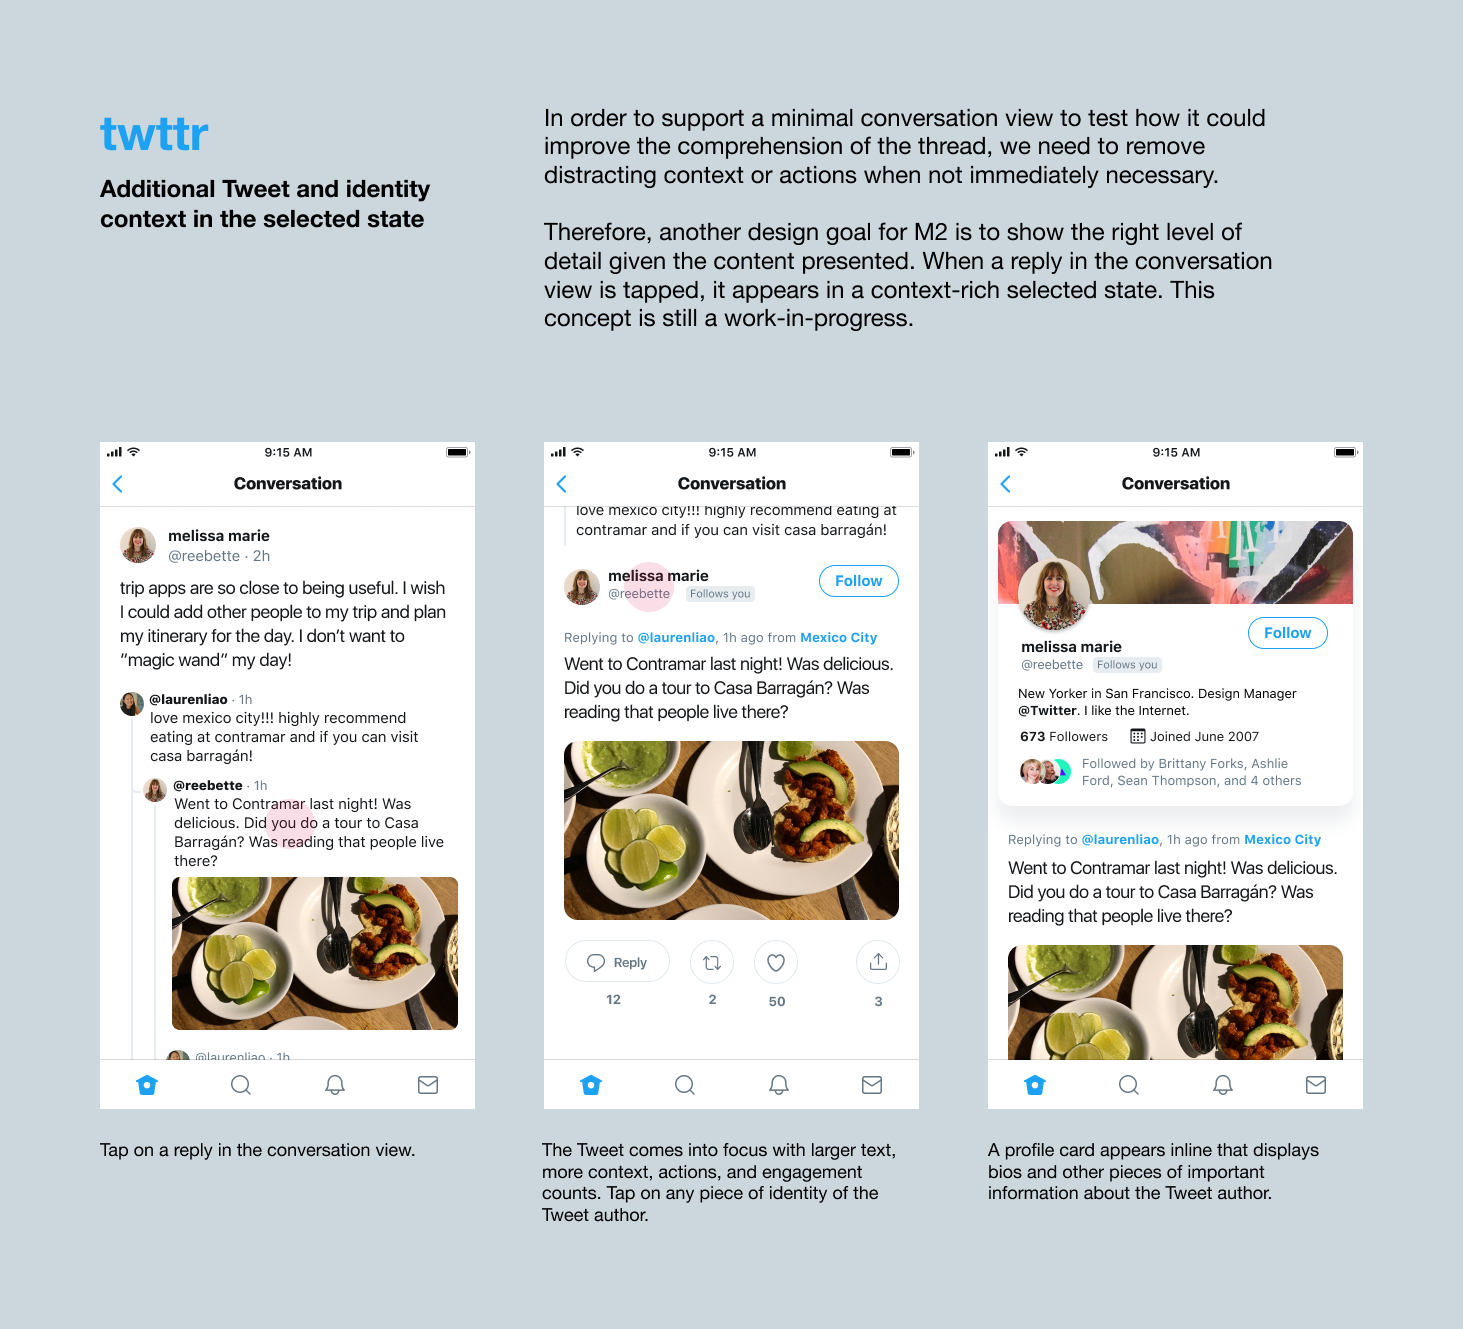 The twttr team is considering a new test that would show a profile card alongside a tweet to give people more context about who wrote the tweet.